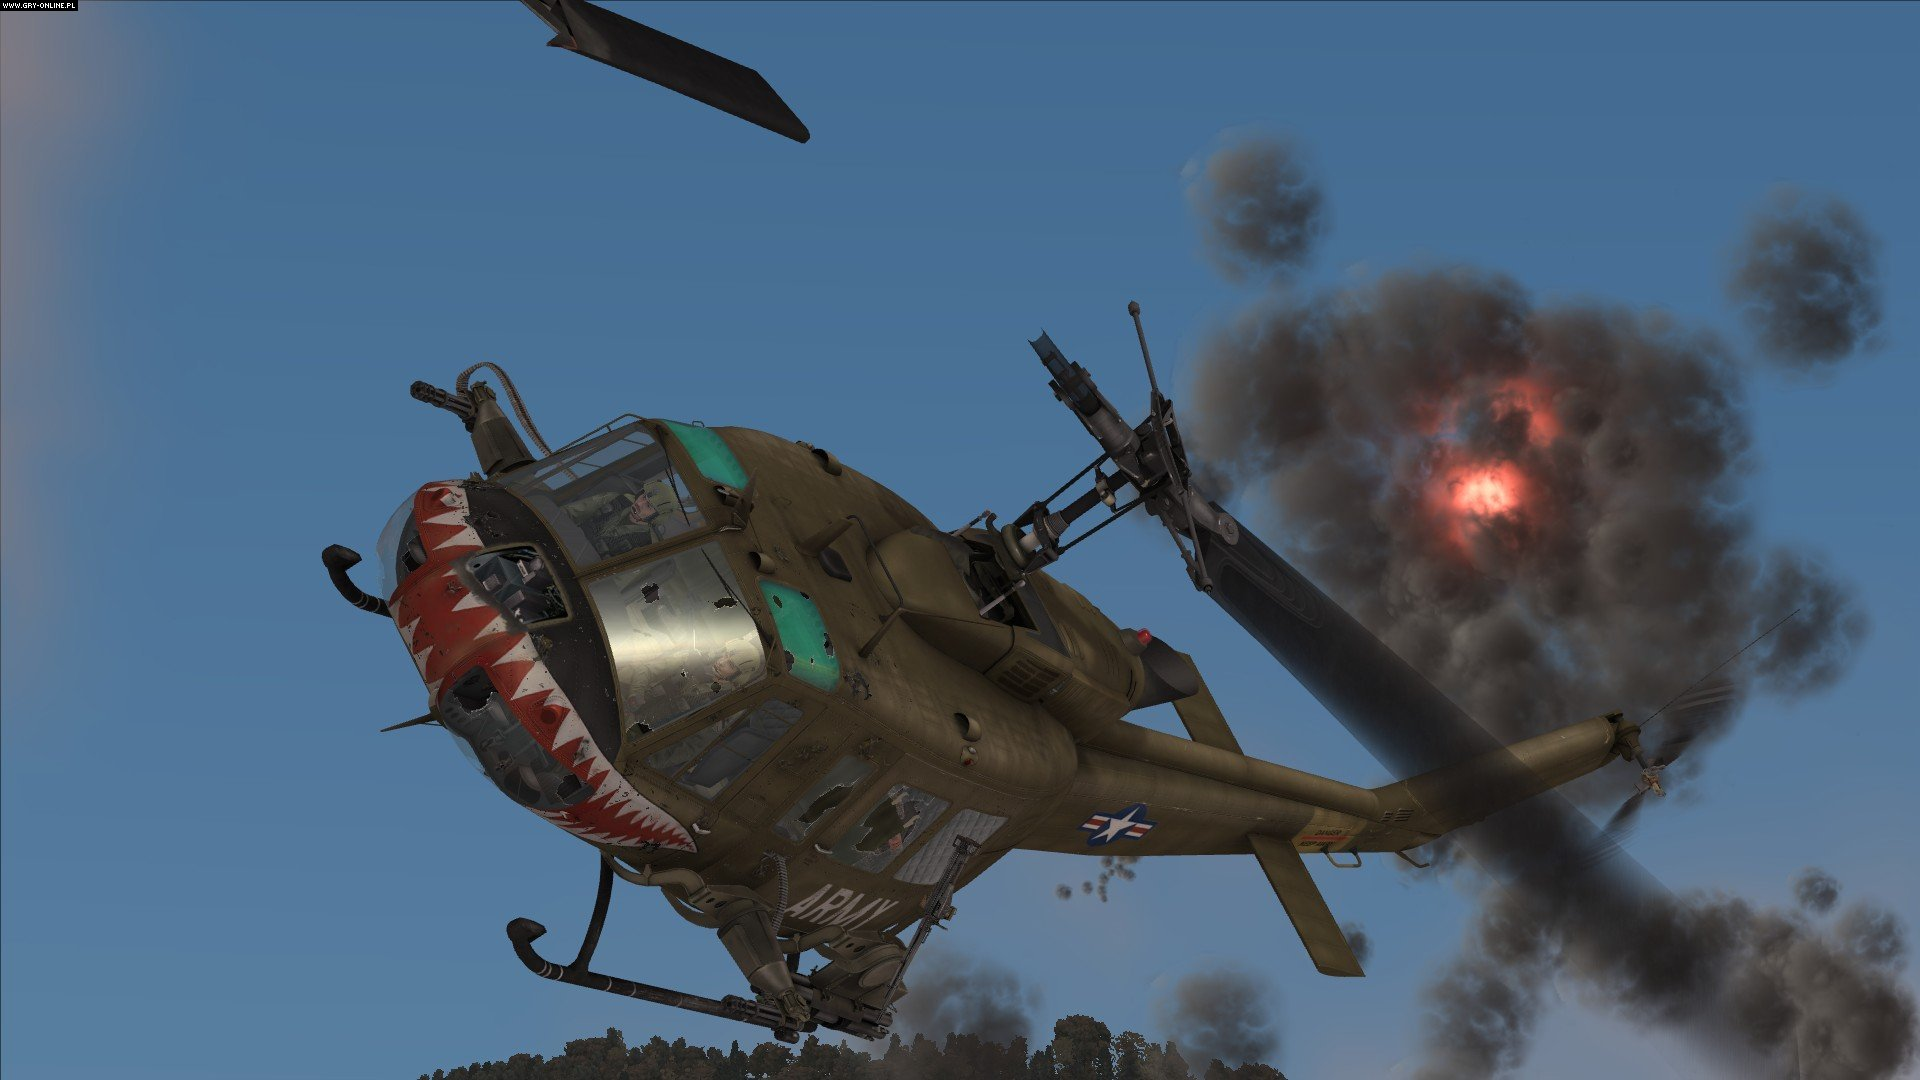 helicopter simulator games online with View Screen on A10 Warthog Wallpaper also anche 4 Game as well Details in addition Details additionally When To Eat Carbs.